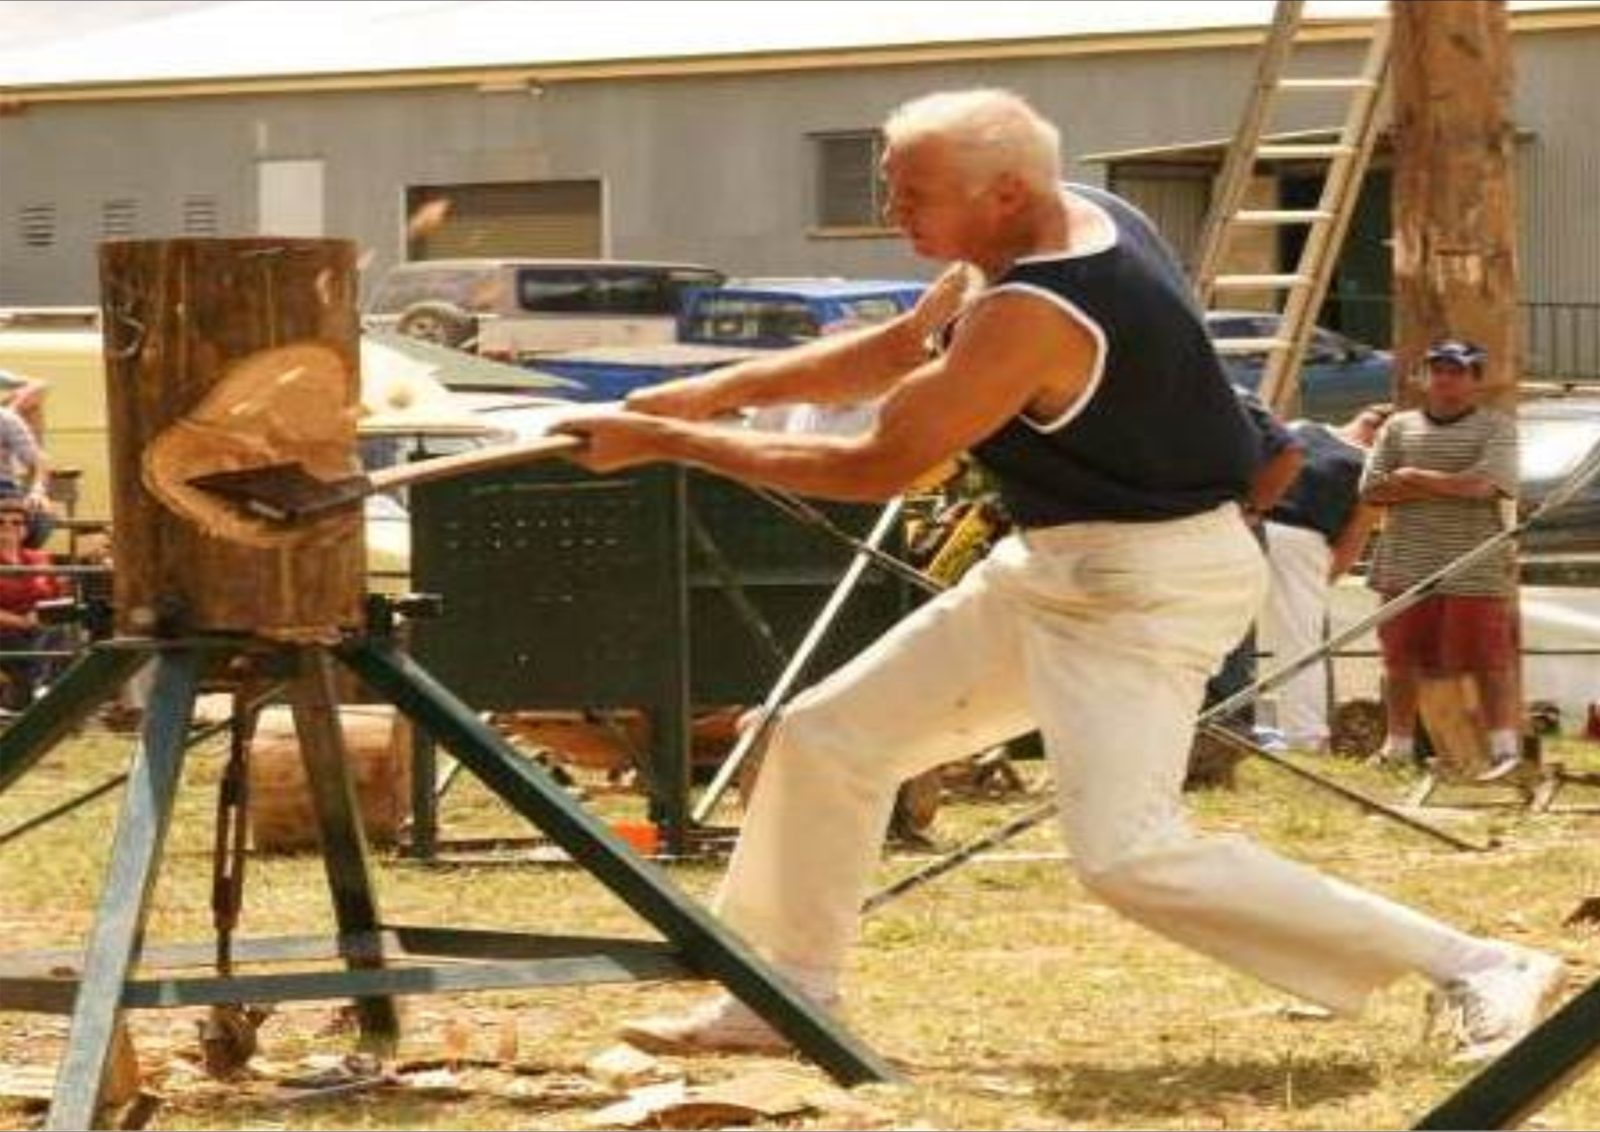 Wood chopping action